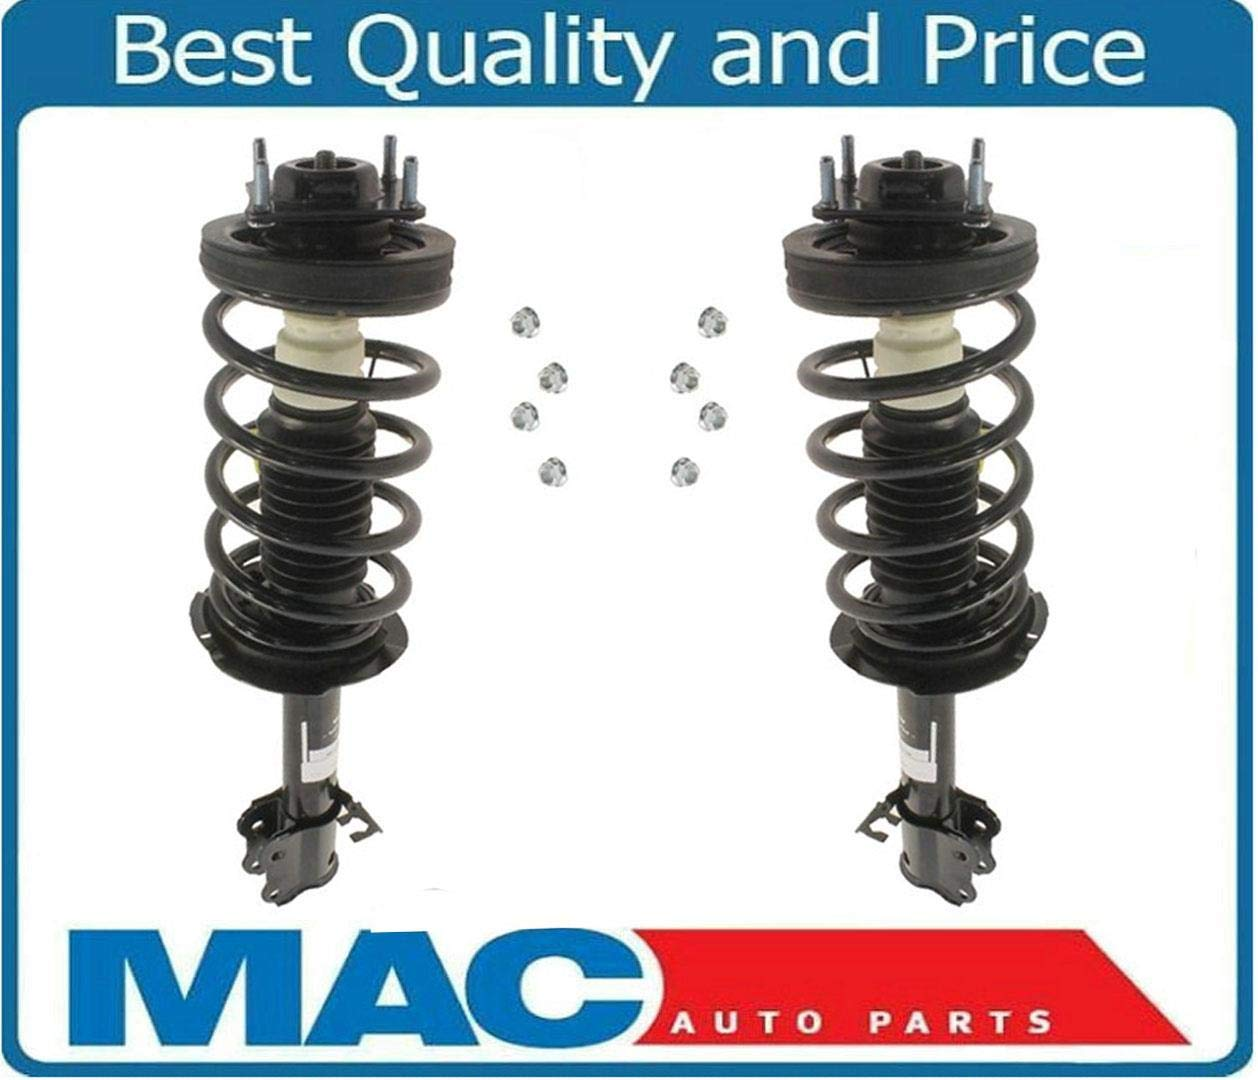 Fits 2001-2011 Ford Escape Mazda Tribute /& 05-11 Mercury Mariner 2 Front Quick Spring Strut and Mount